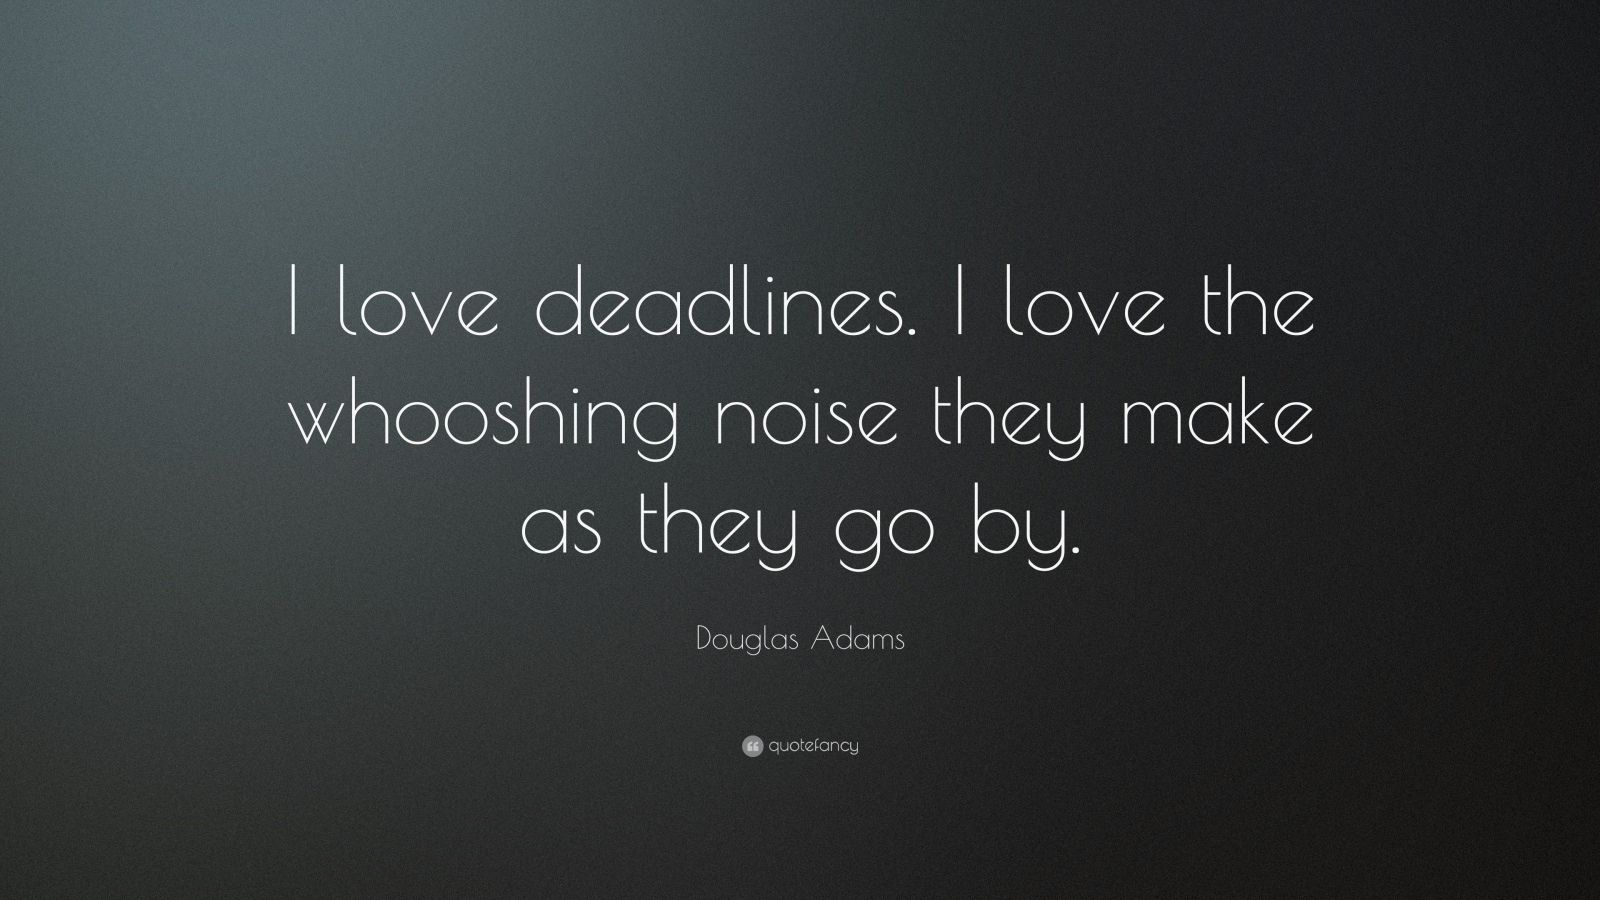 Nice Wallpapers With Inspiring Quotes Douglas Adams Quote I Love Deadlines I Love The